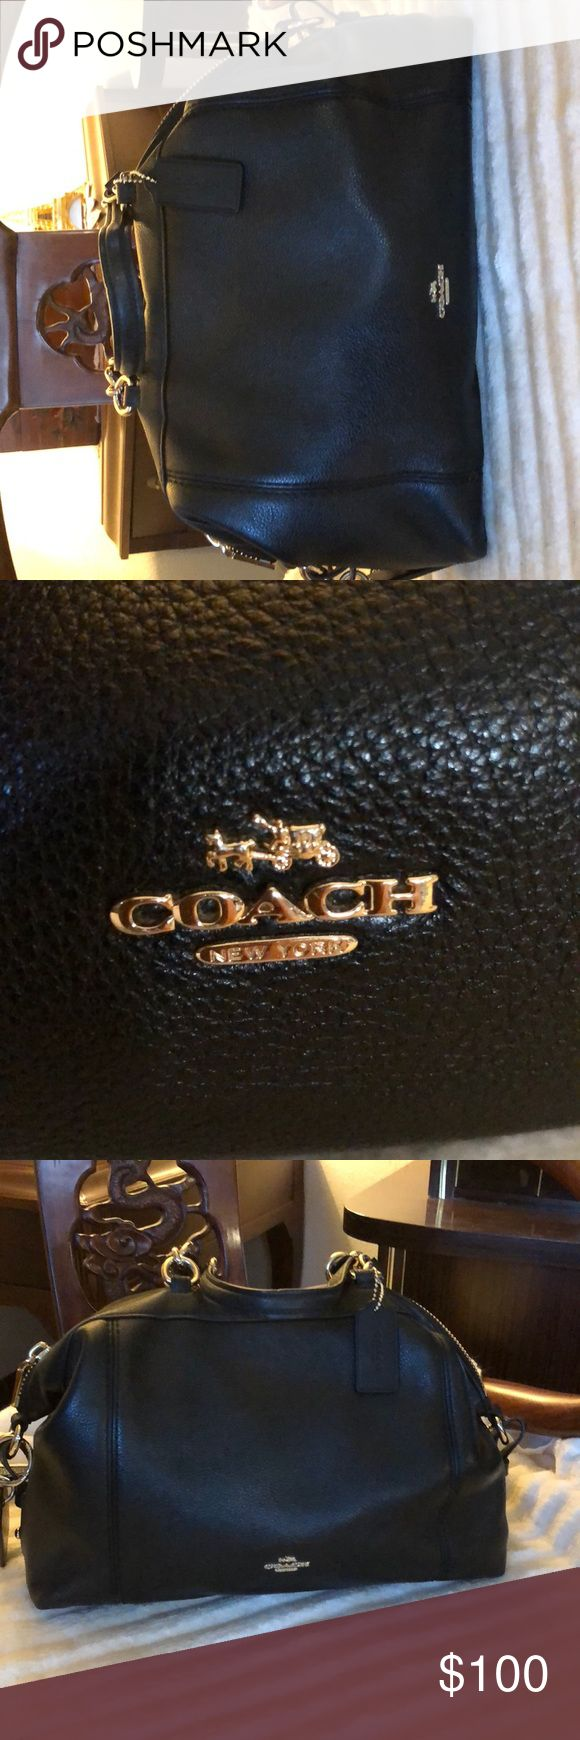 Like new coach handbag Black pebbled leather. Long strap or handheld. Perfect condition Coach Bags Crossbody Bags